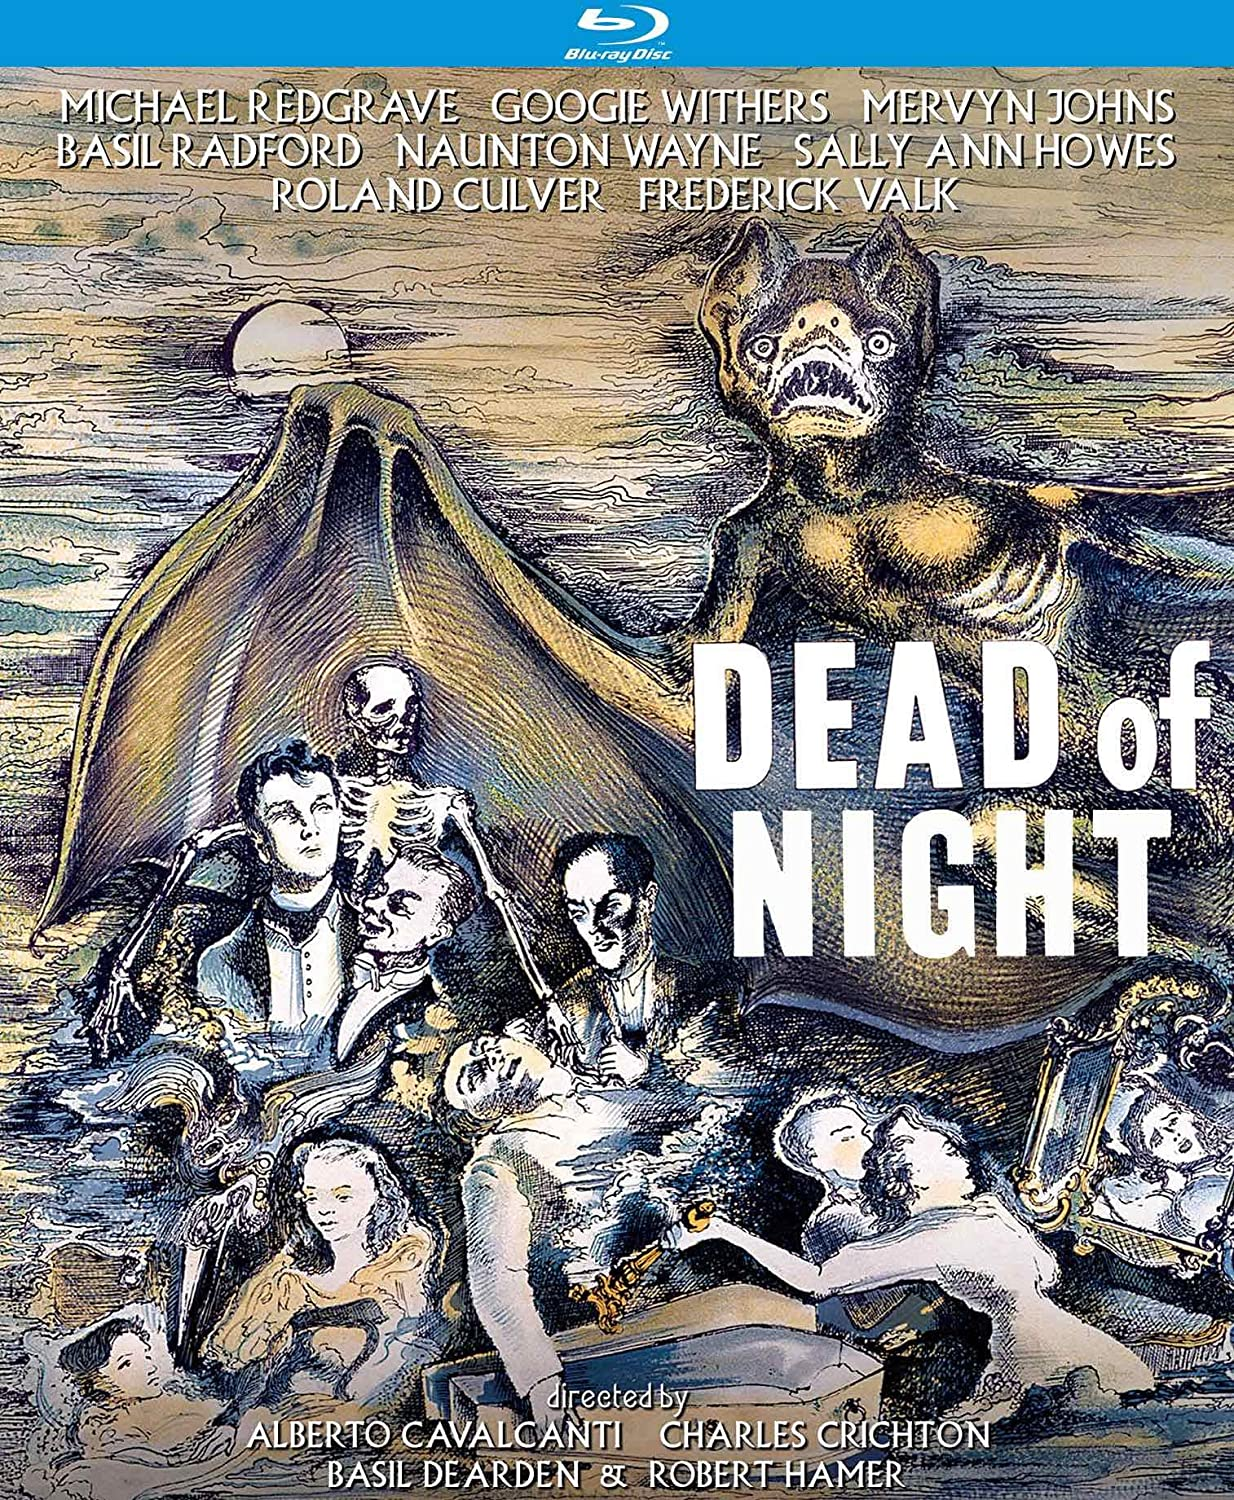 Dead of Night (1945) starring Mervyn Johns, Sally Ann Howes, Michael Redgrave